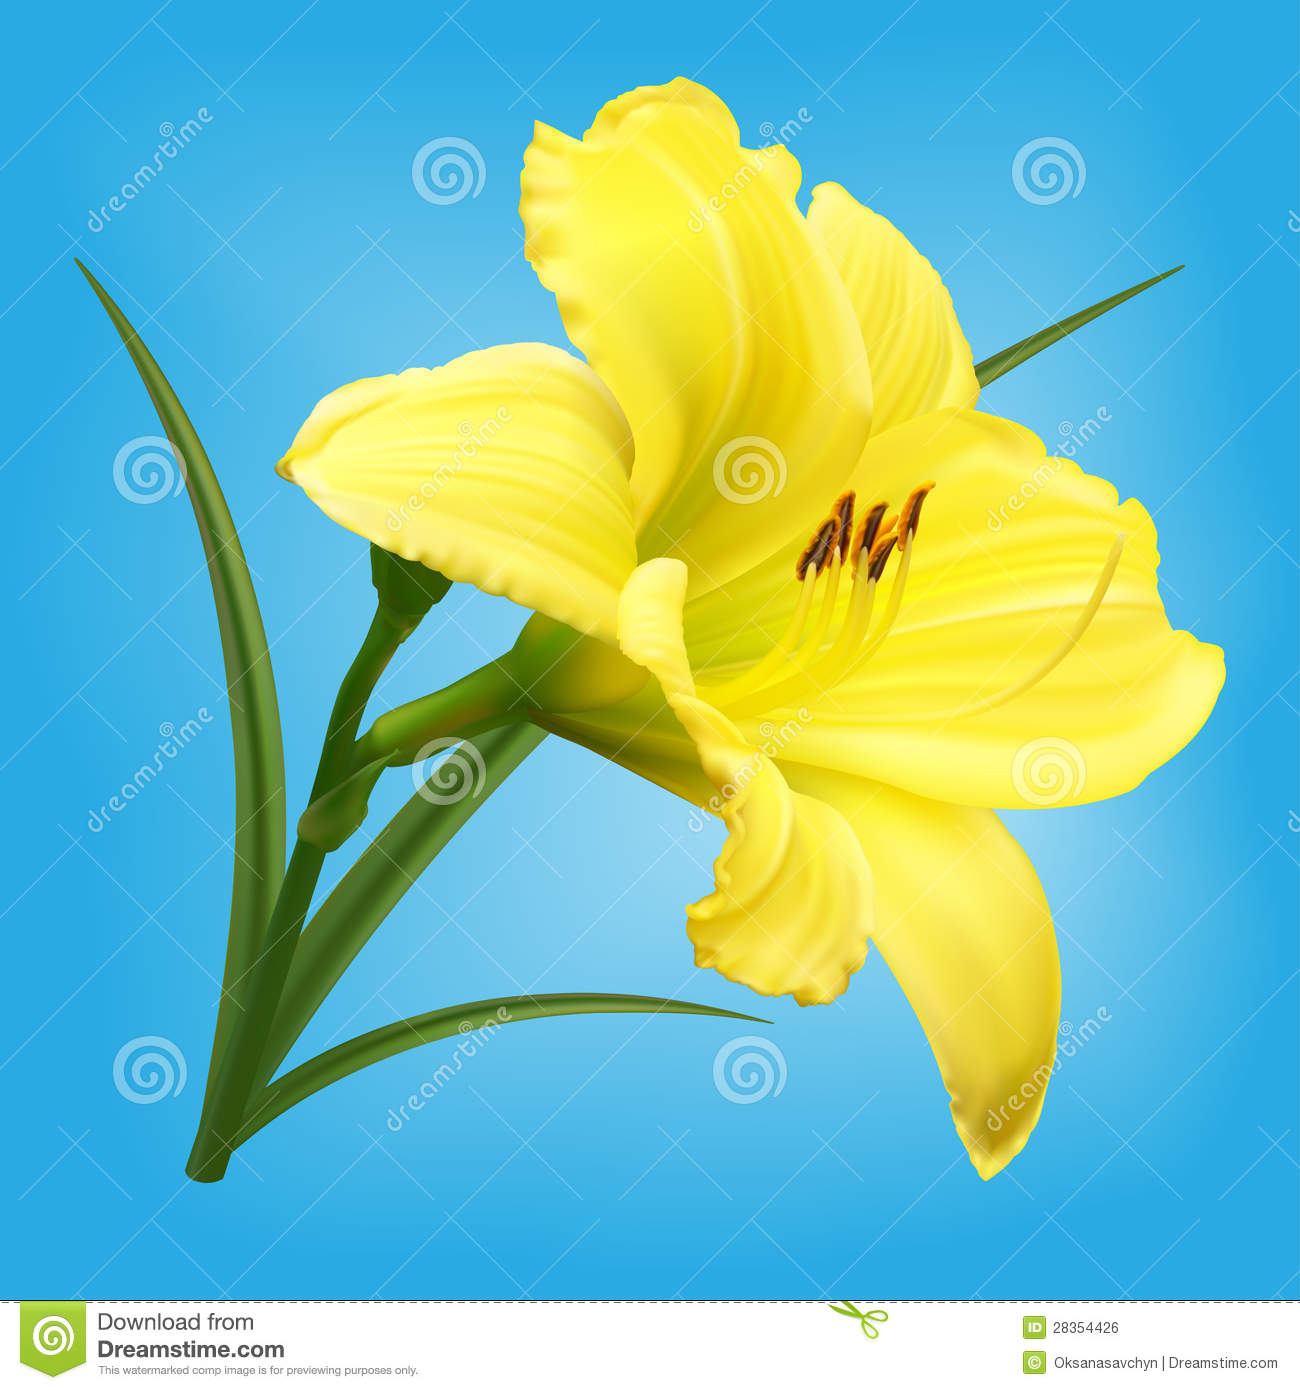 yellow lily flower  flower, Beautiful flower